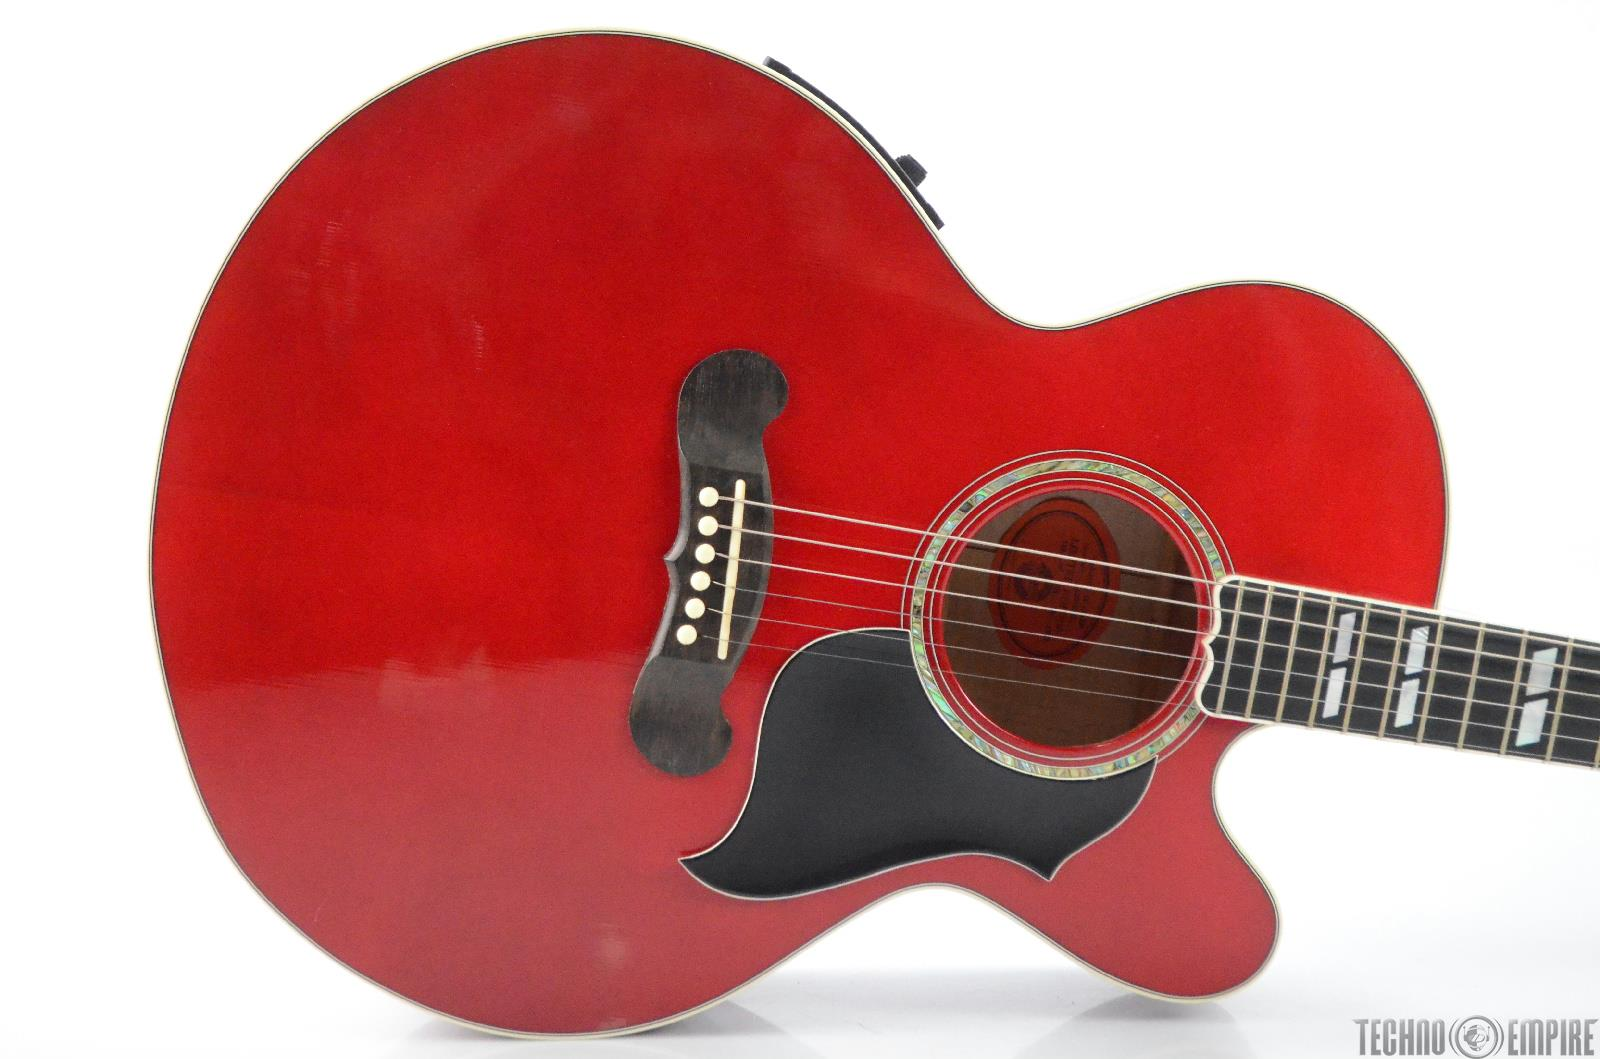 2005 Gibson J-185 EC Custom Acoustic Electric Guitar w/ Hard Case Red #31010